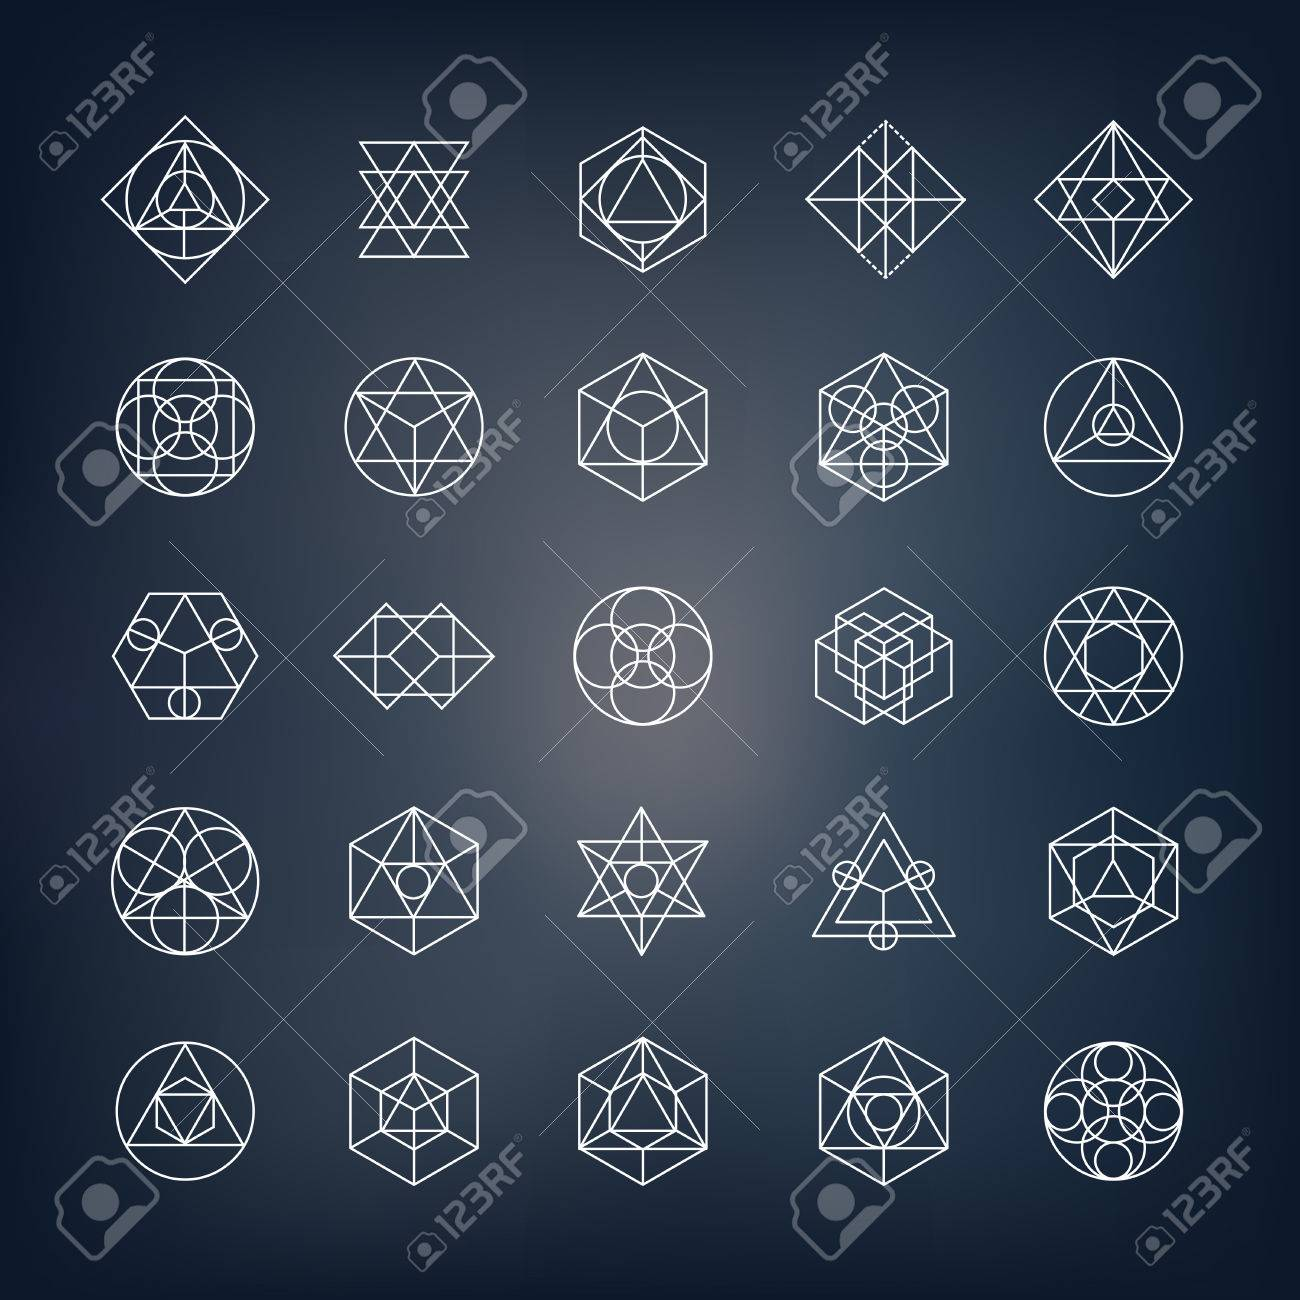 Geometrical shapes. Can be used as sacred geometry sybols or alchemy and spirituality elements. - 56646219